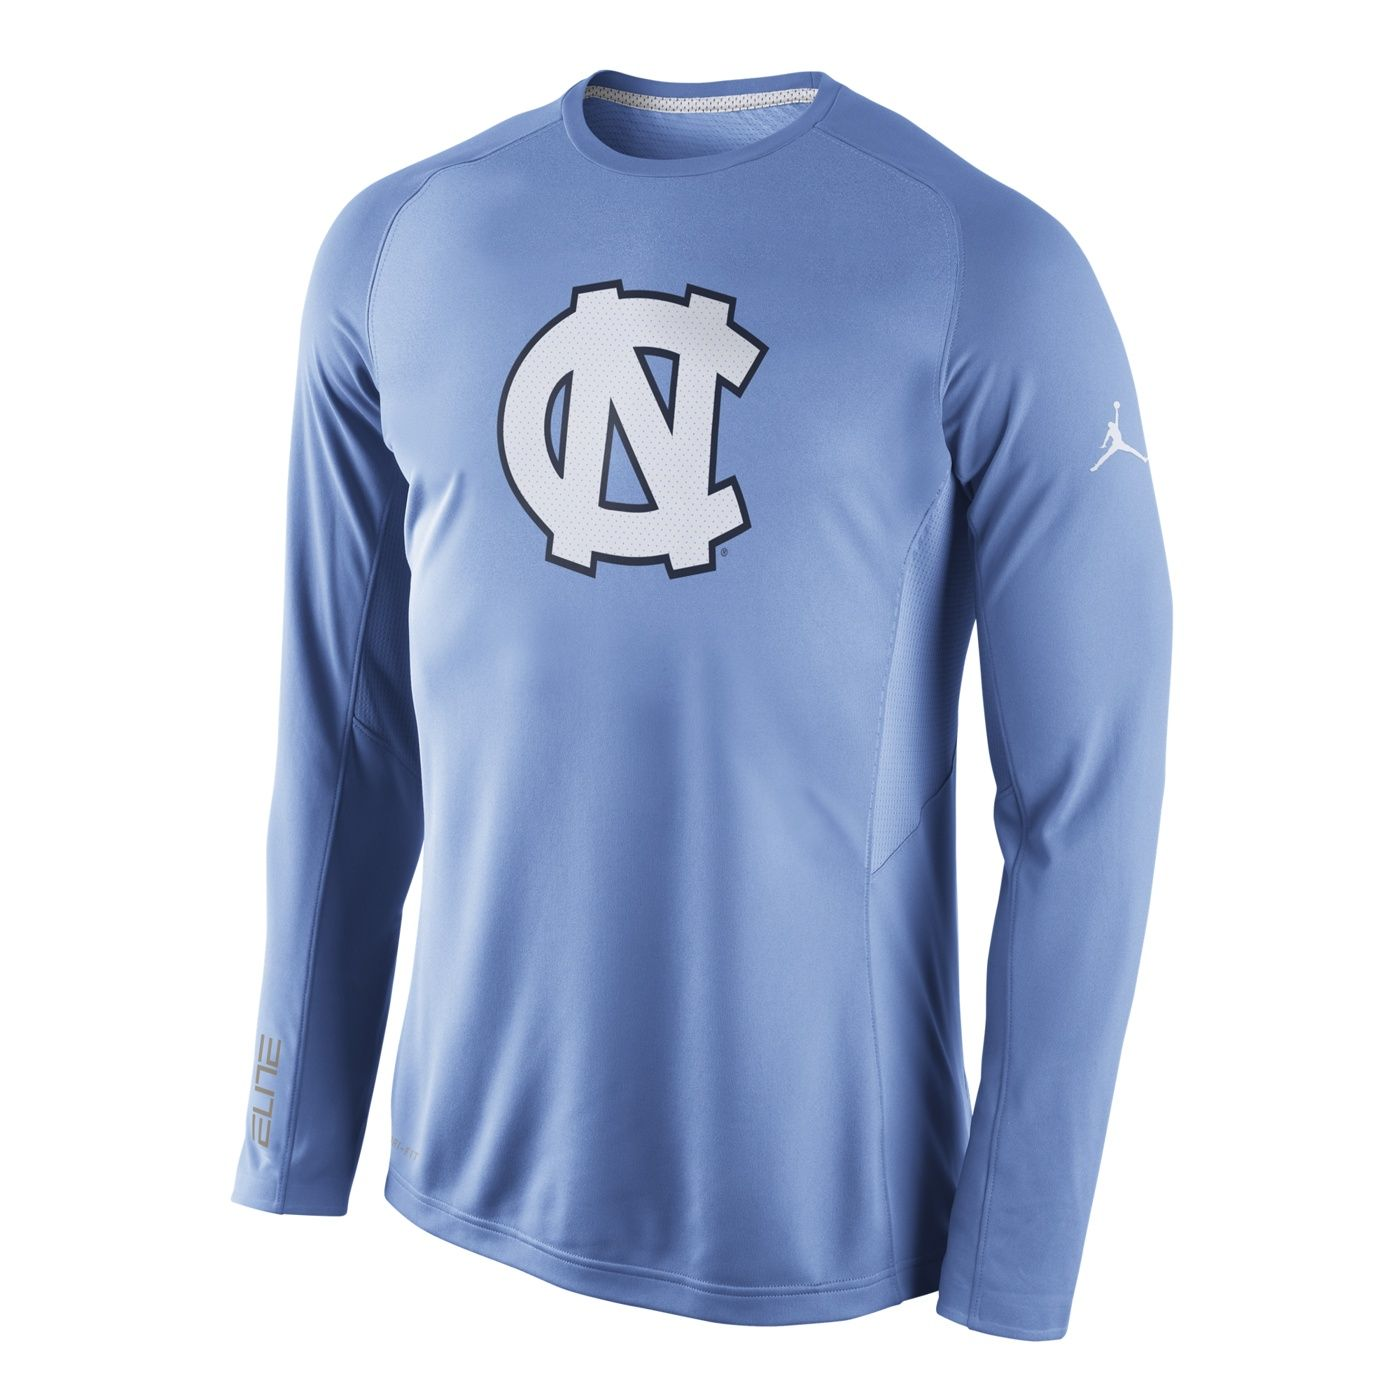 34fdb84cb0d Disruption Shooting Shirt - GAA members save 10% at Johnny T-shirt. #UNCGAA  alumni.unc.edu